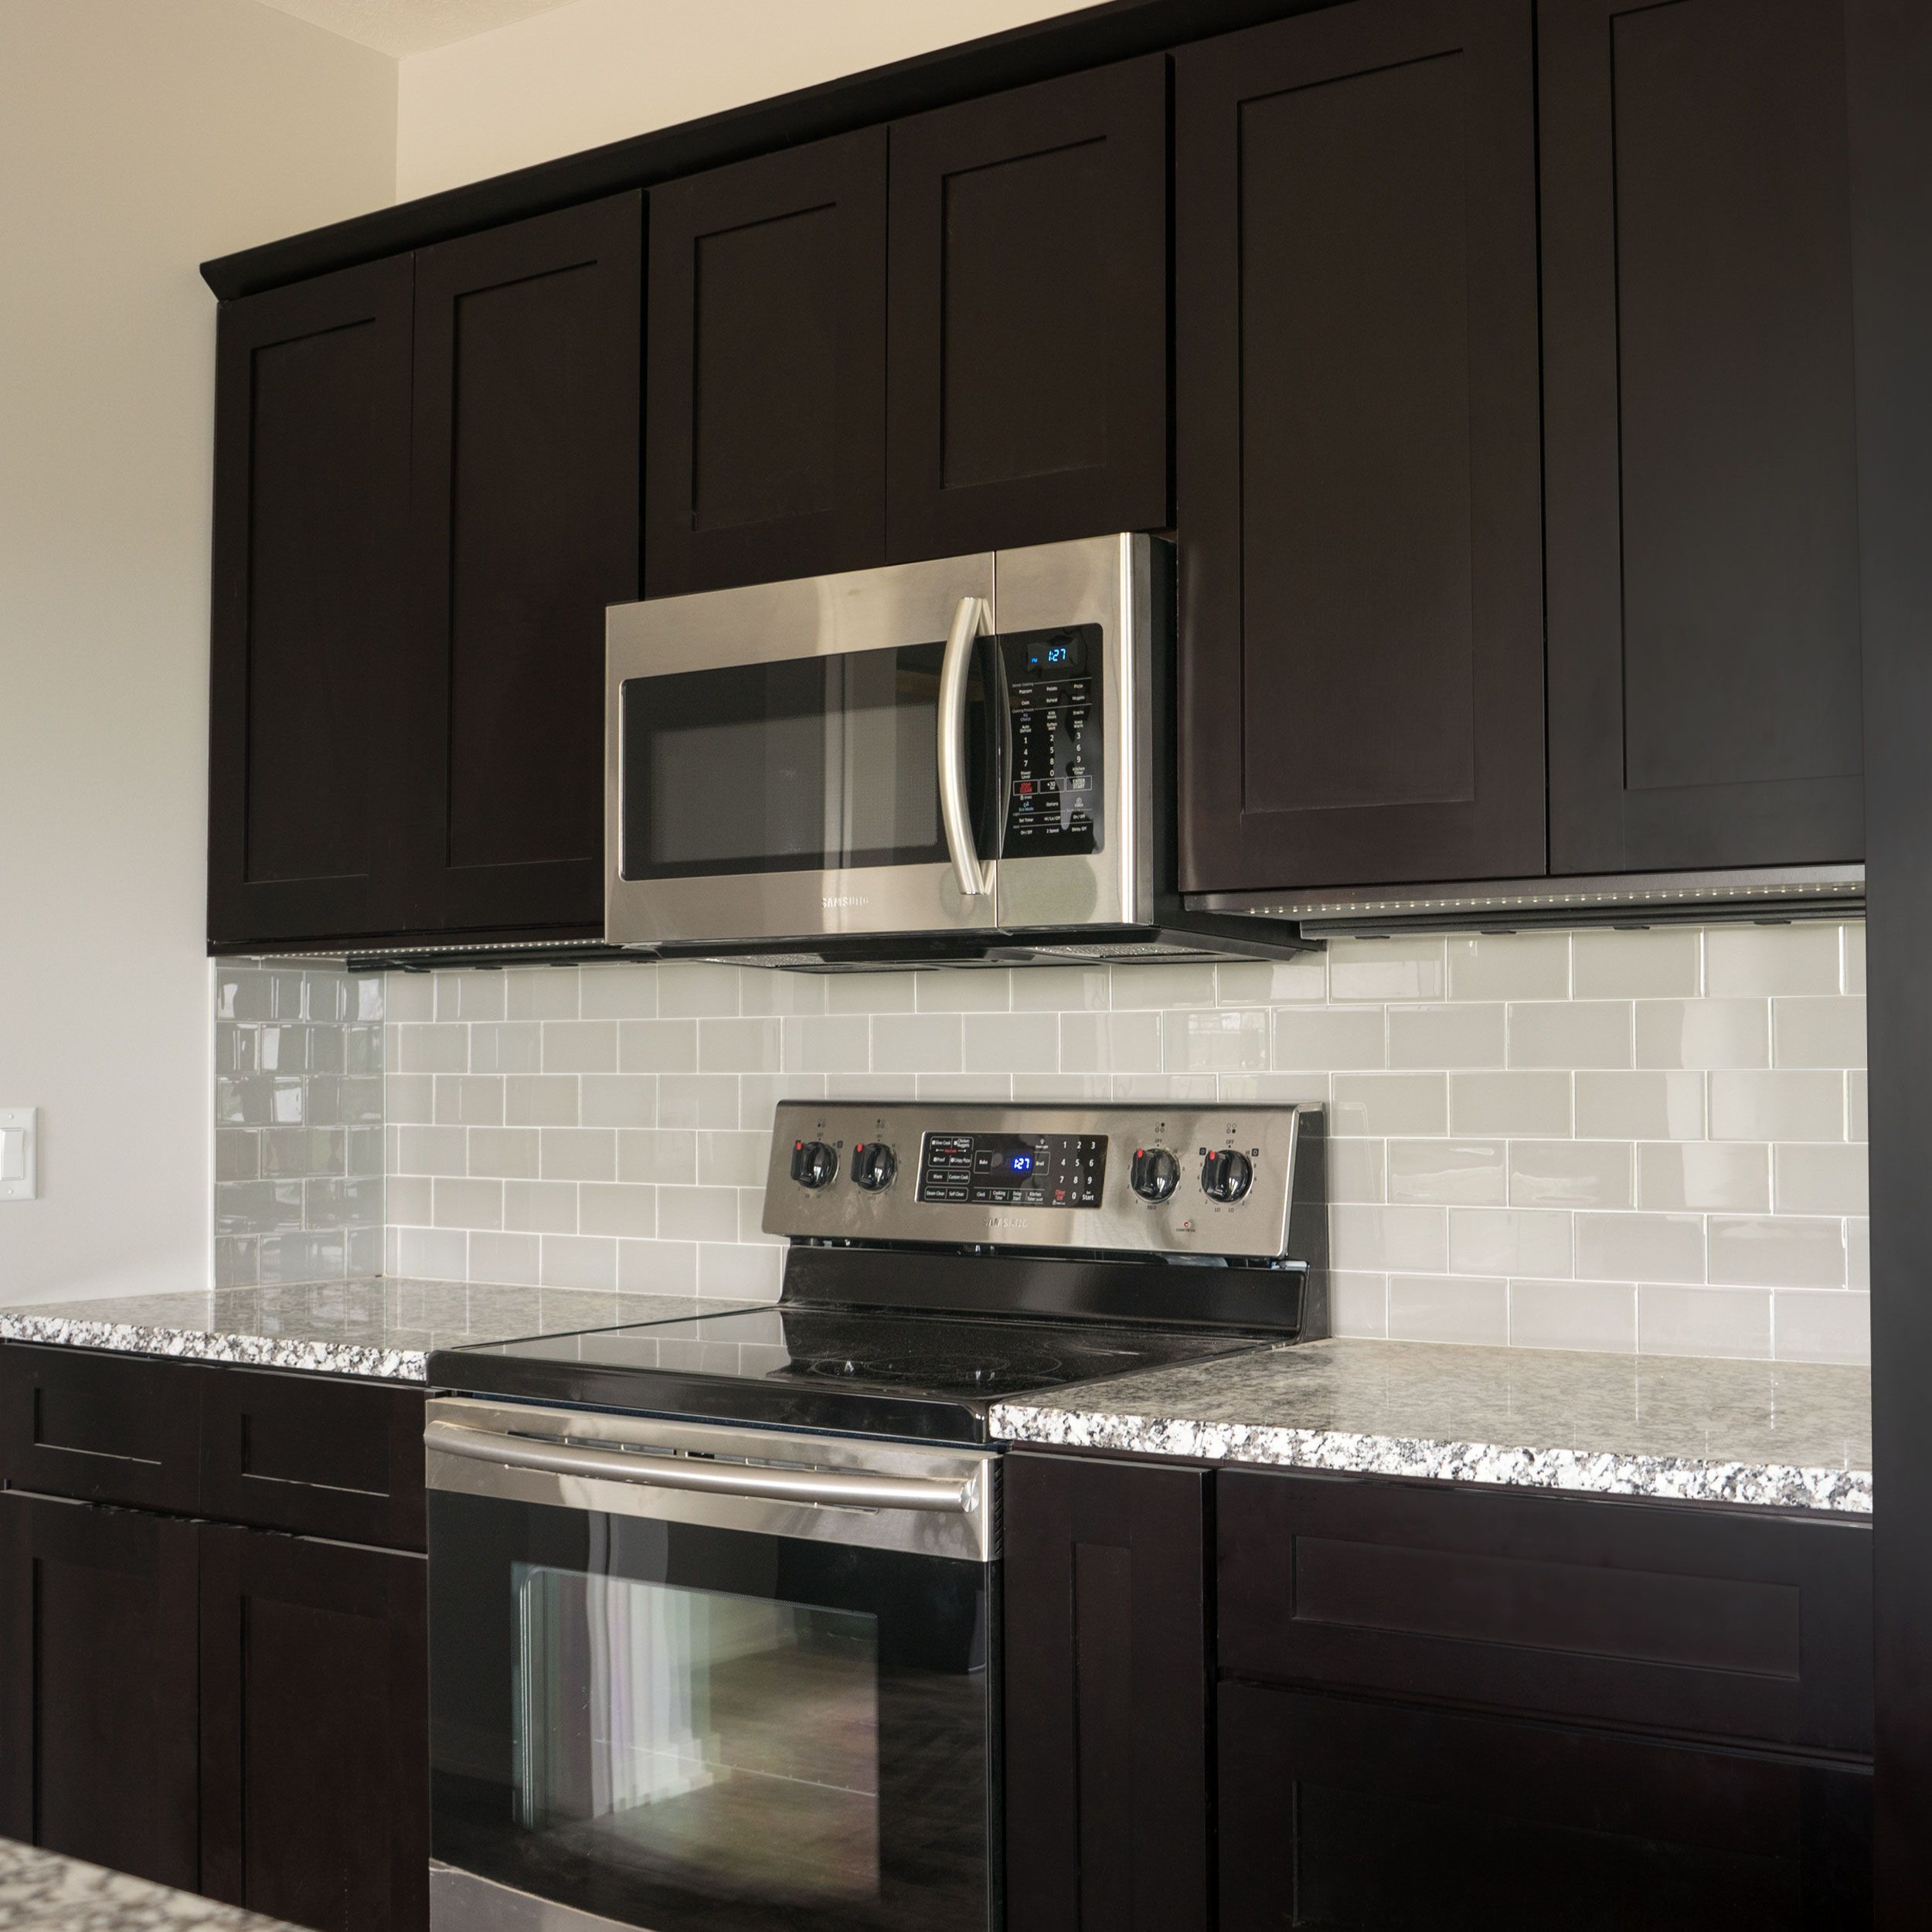 White marble subway backsplash tile countertop espresso cabinet from -  Joe If We Do Dark Cabinets I Don T Think The Gray Engineered Wood Will Look Good Island Kitchen Cabinets Bundle In Shaker Espresso With Soft Close